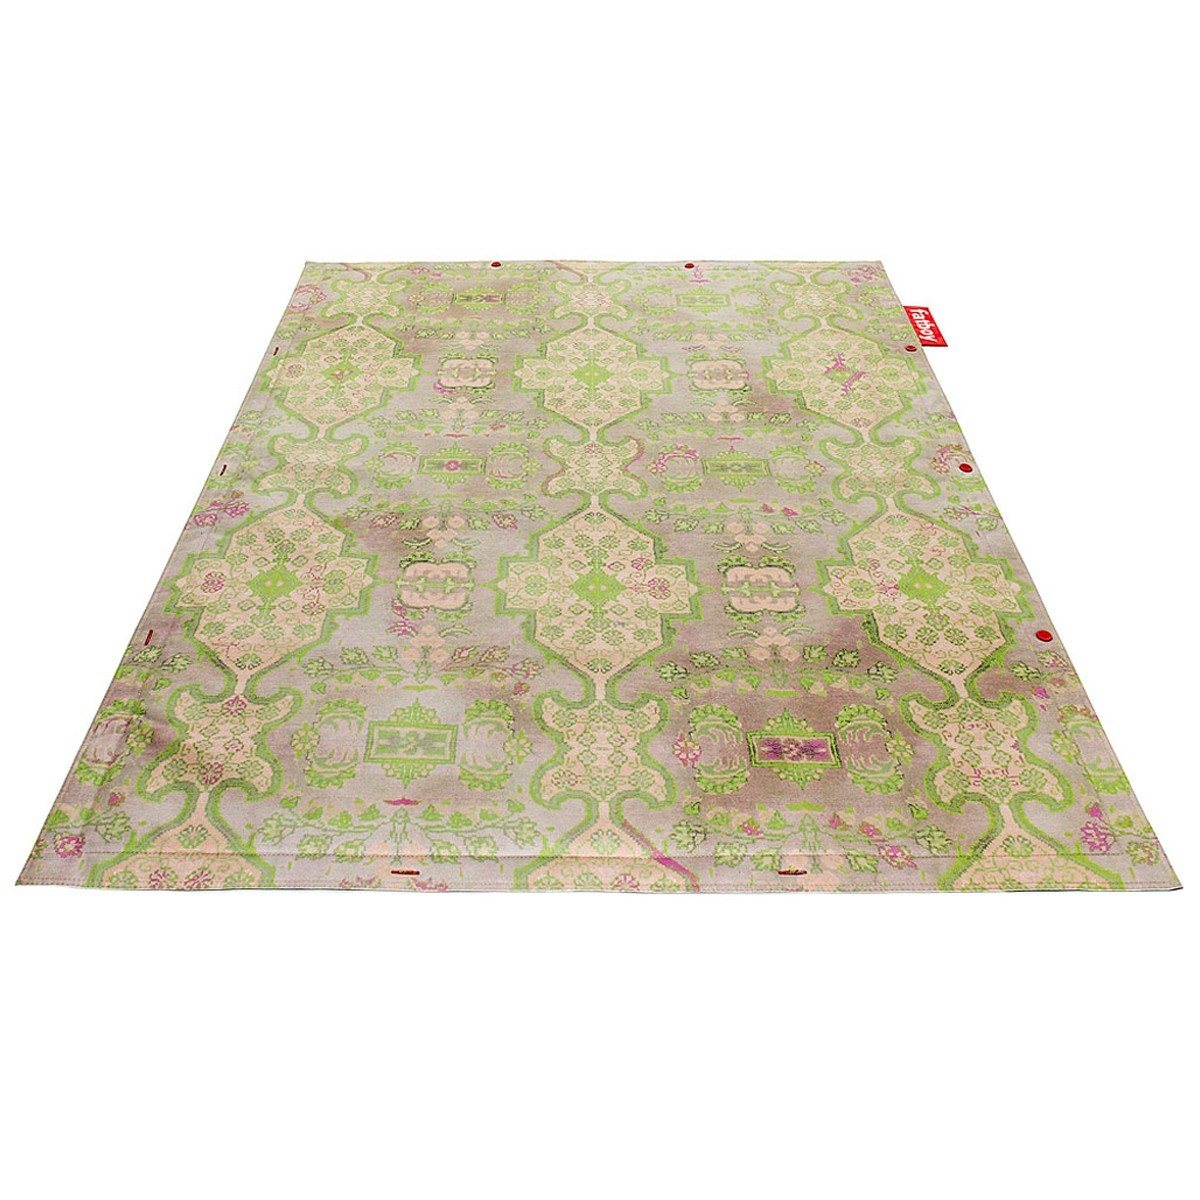 Fatboy Non Flying Carpet vloerkleed-Small Persian Lime